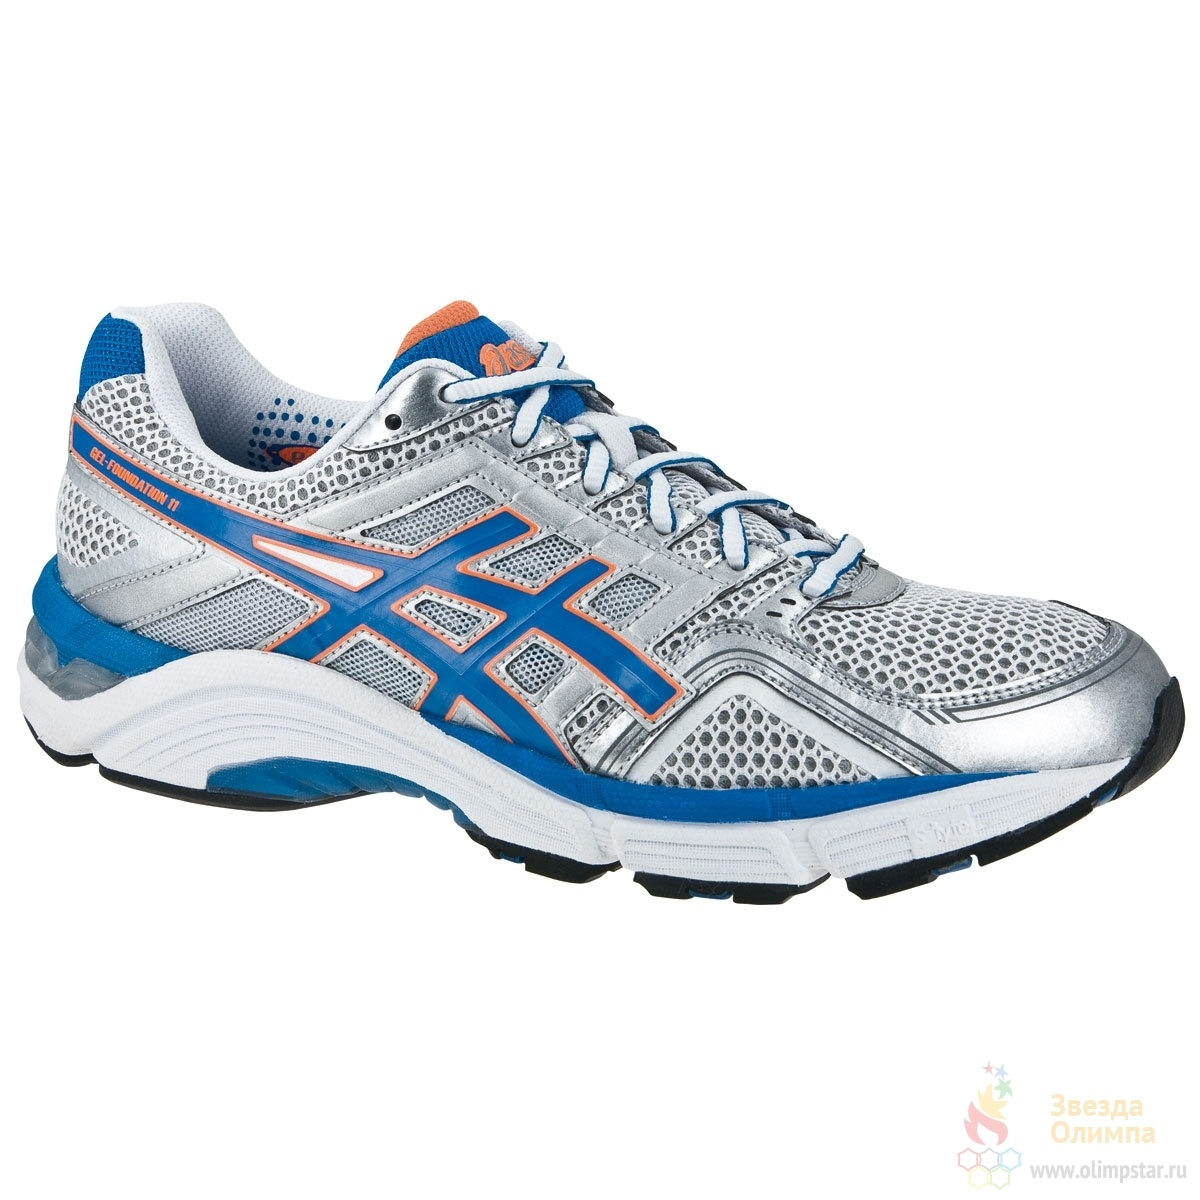 asics gel foundation 14